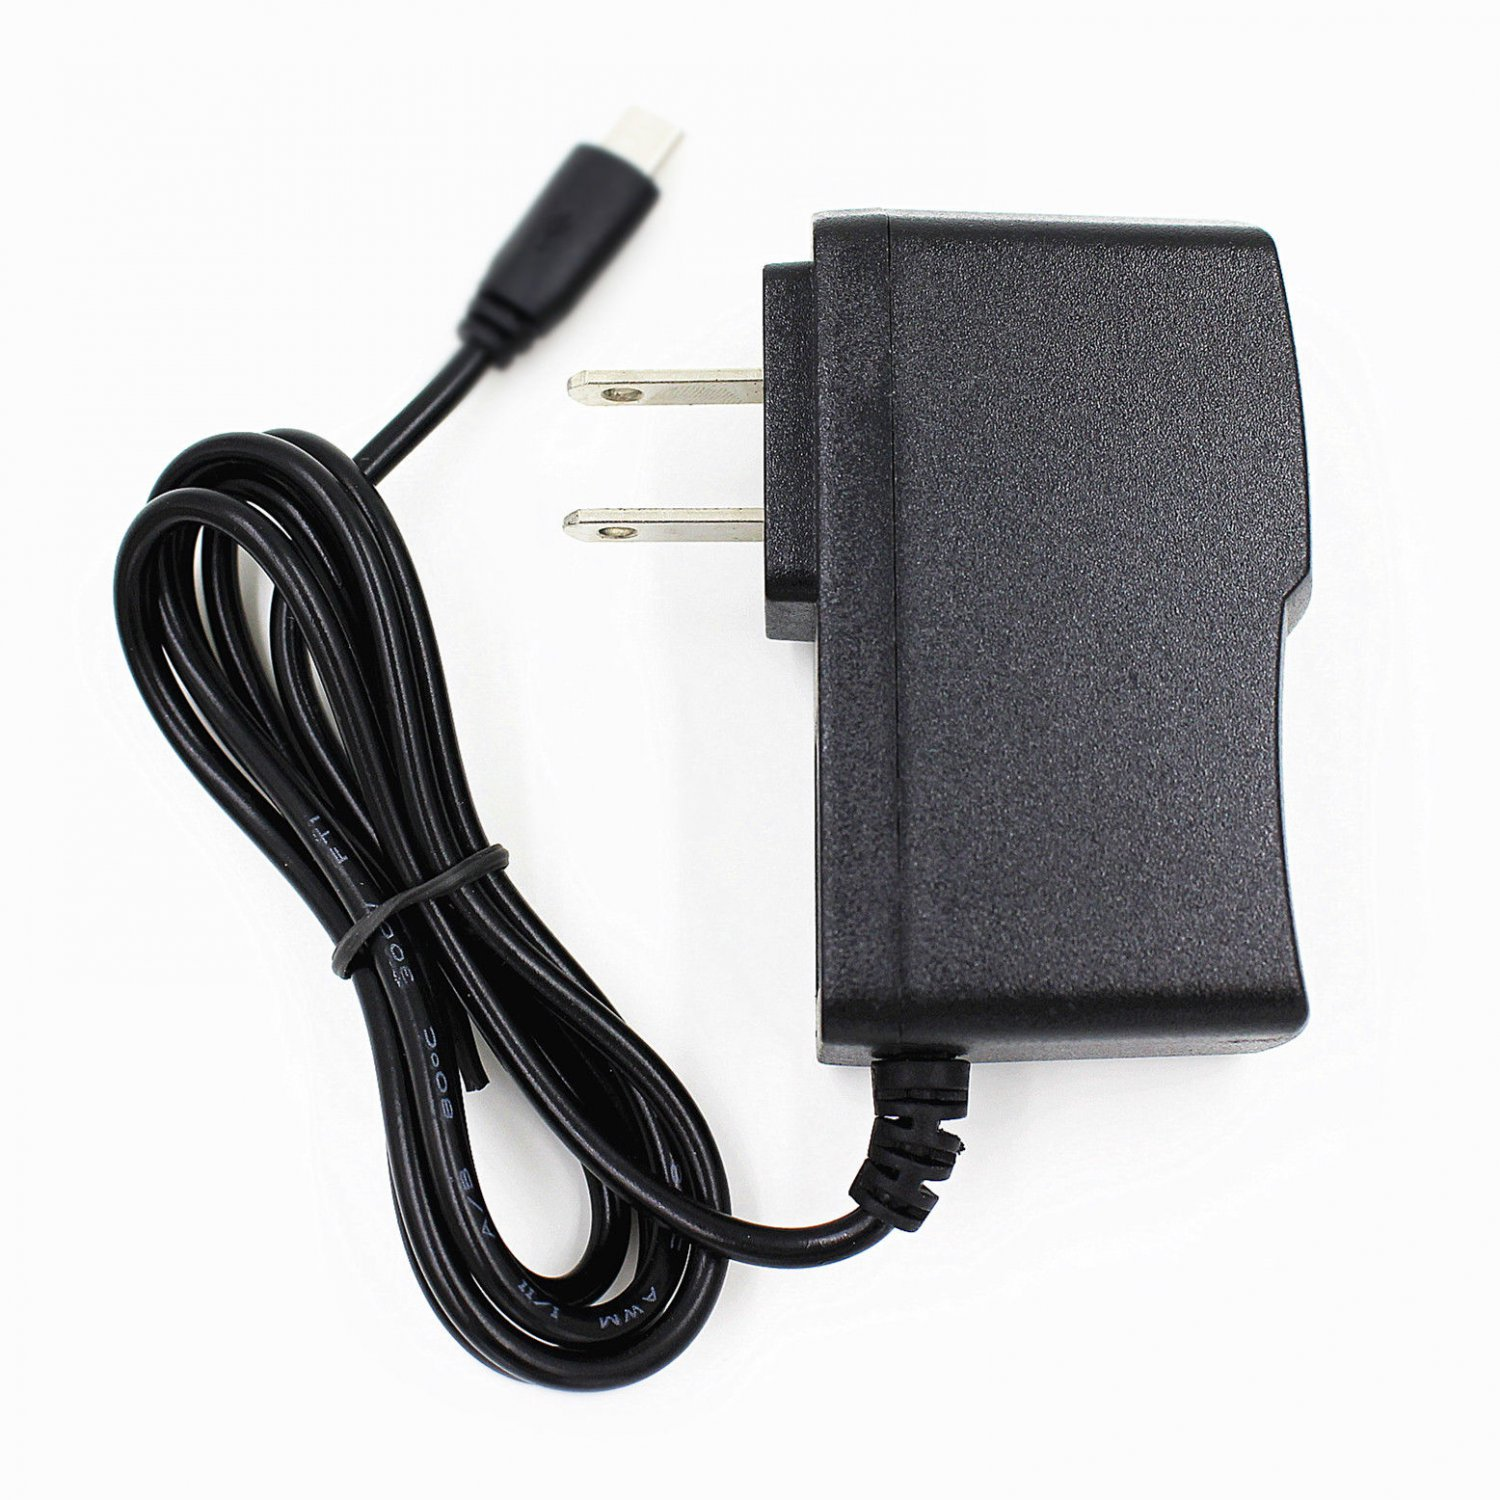 US AC/DC Power Adapter Charger Cord For Straight Talk/Tracfone LG 511c LG511c